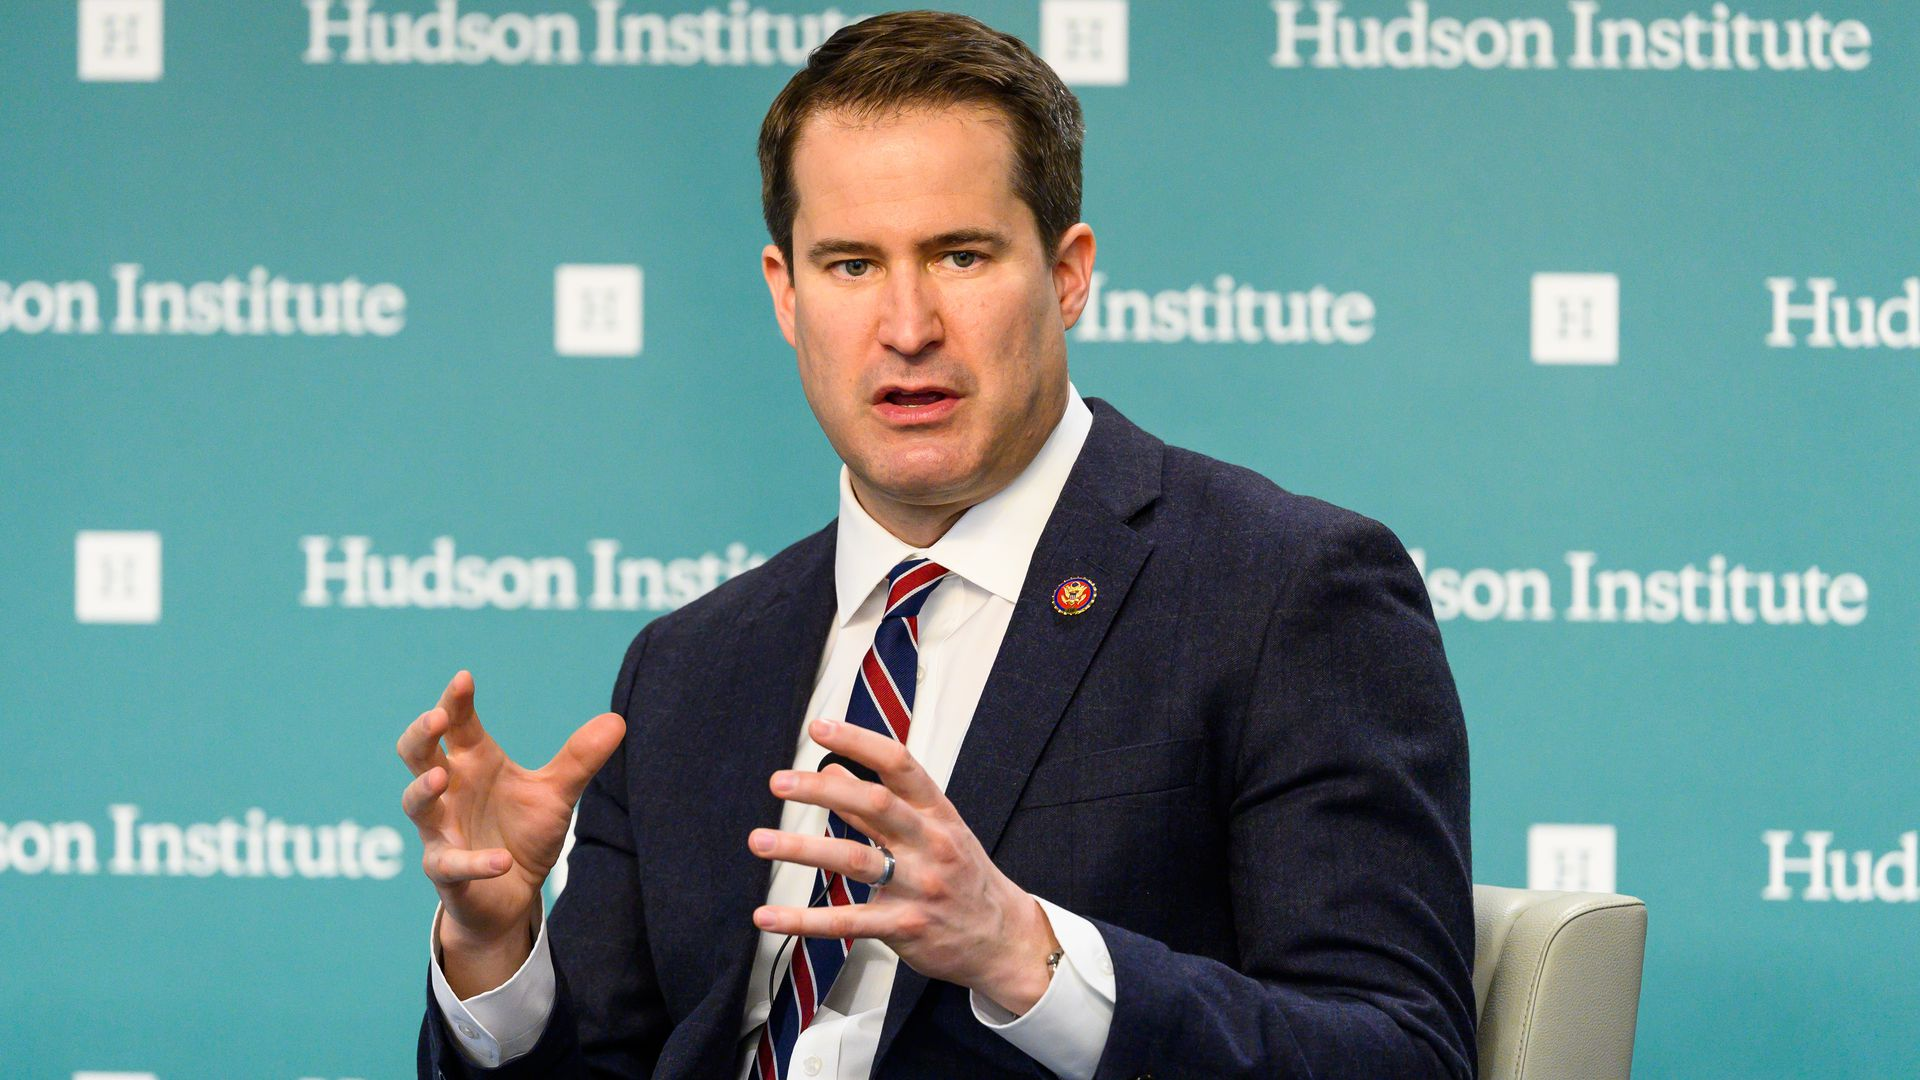 Seth Moulton sitting and gesturing with his hands.